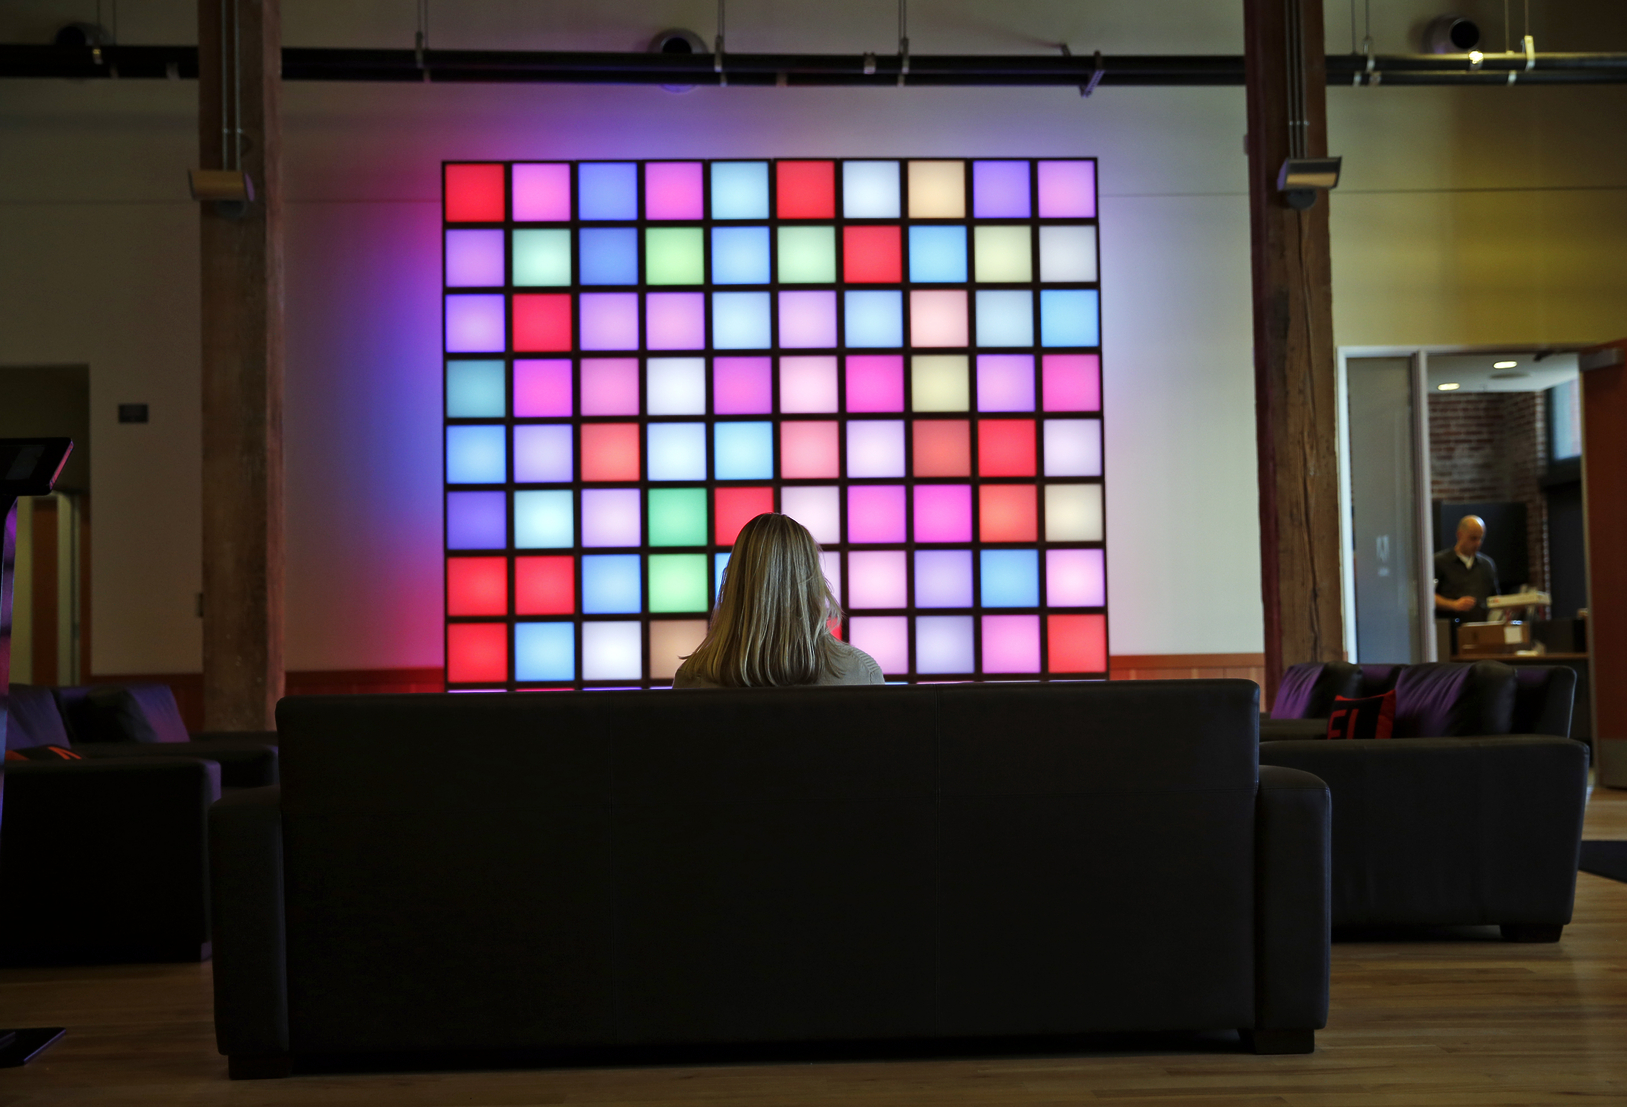 adobe san francisco. Stung By Steve Jobs\u0027 Remarks, Adobe Successfully Reinvents Itself - SFChronicle.com San Francisco